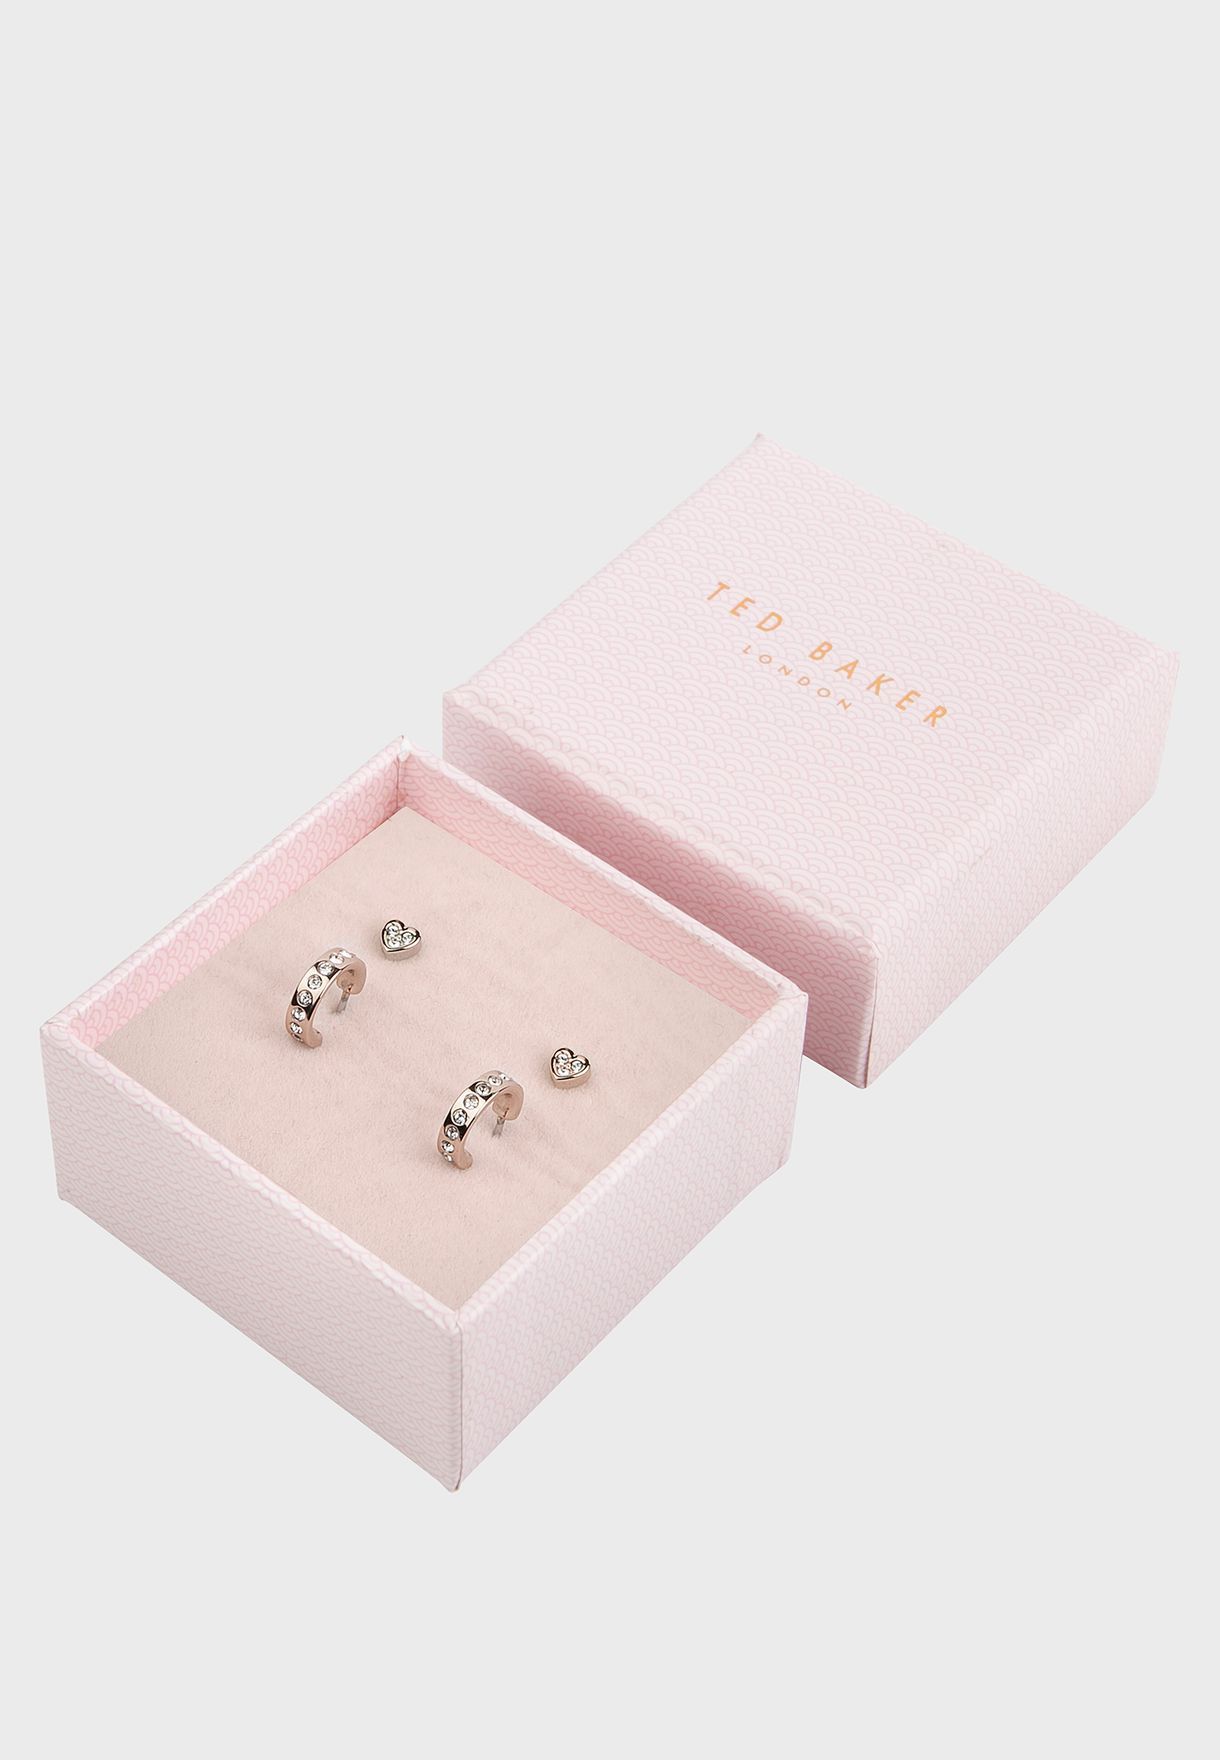 Nelsa Nano Heart Huggie Earrings Gift Set